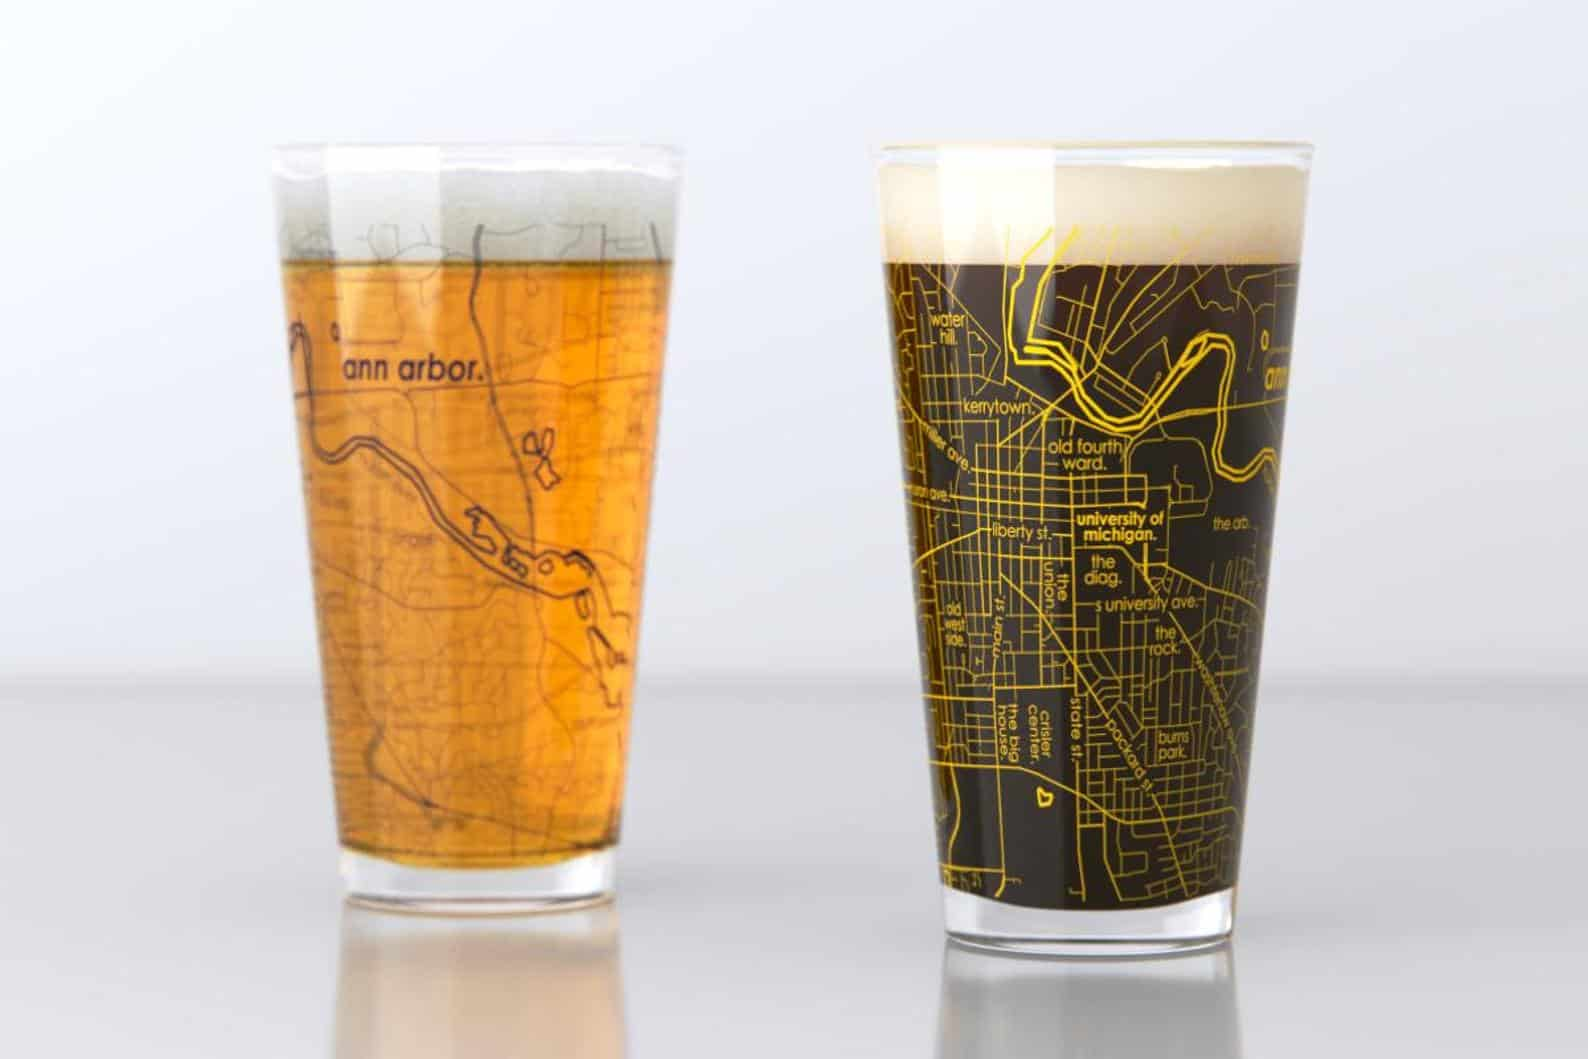 Ann Arbor Street Map Pint Glasses - an ultimate michigan gift idea